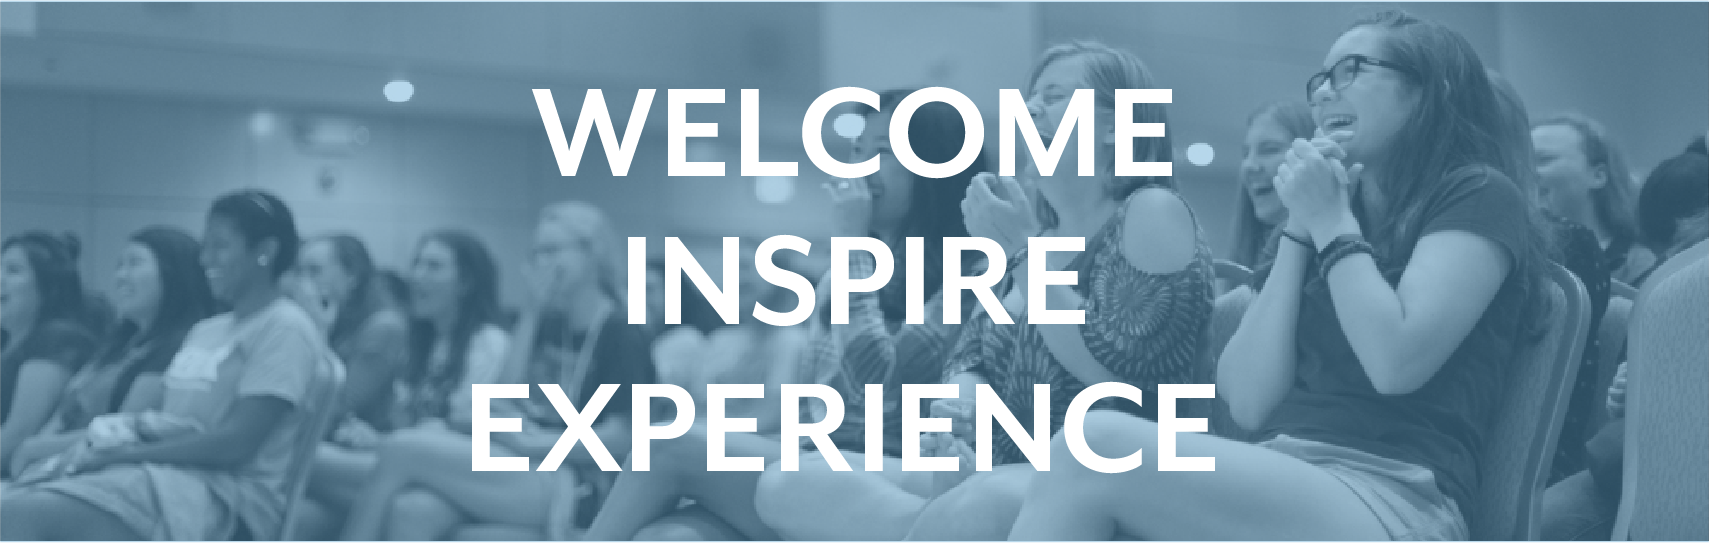 "Crowd of people clapping in the great hall, with the words ""welcome inspire experience"""